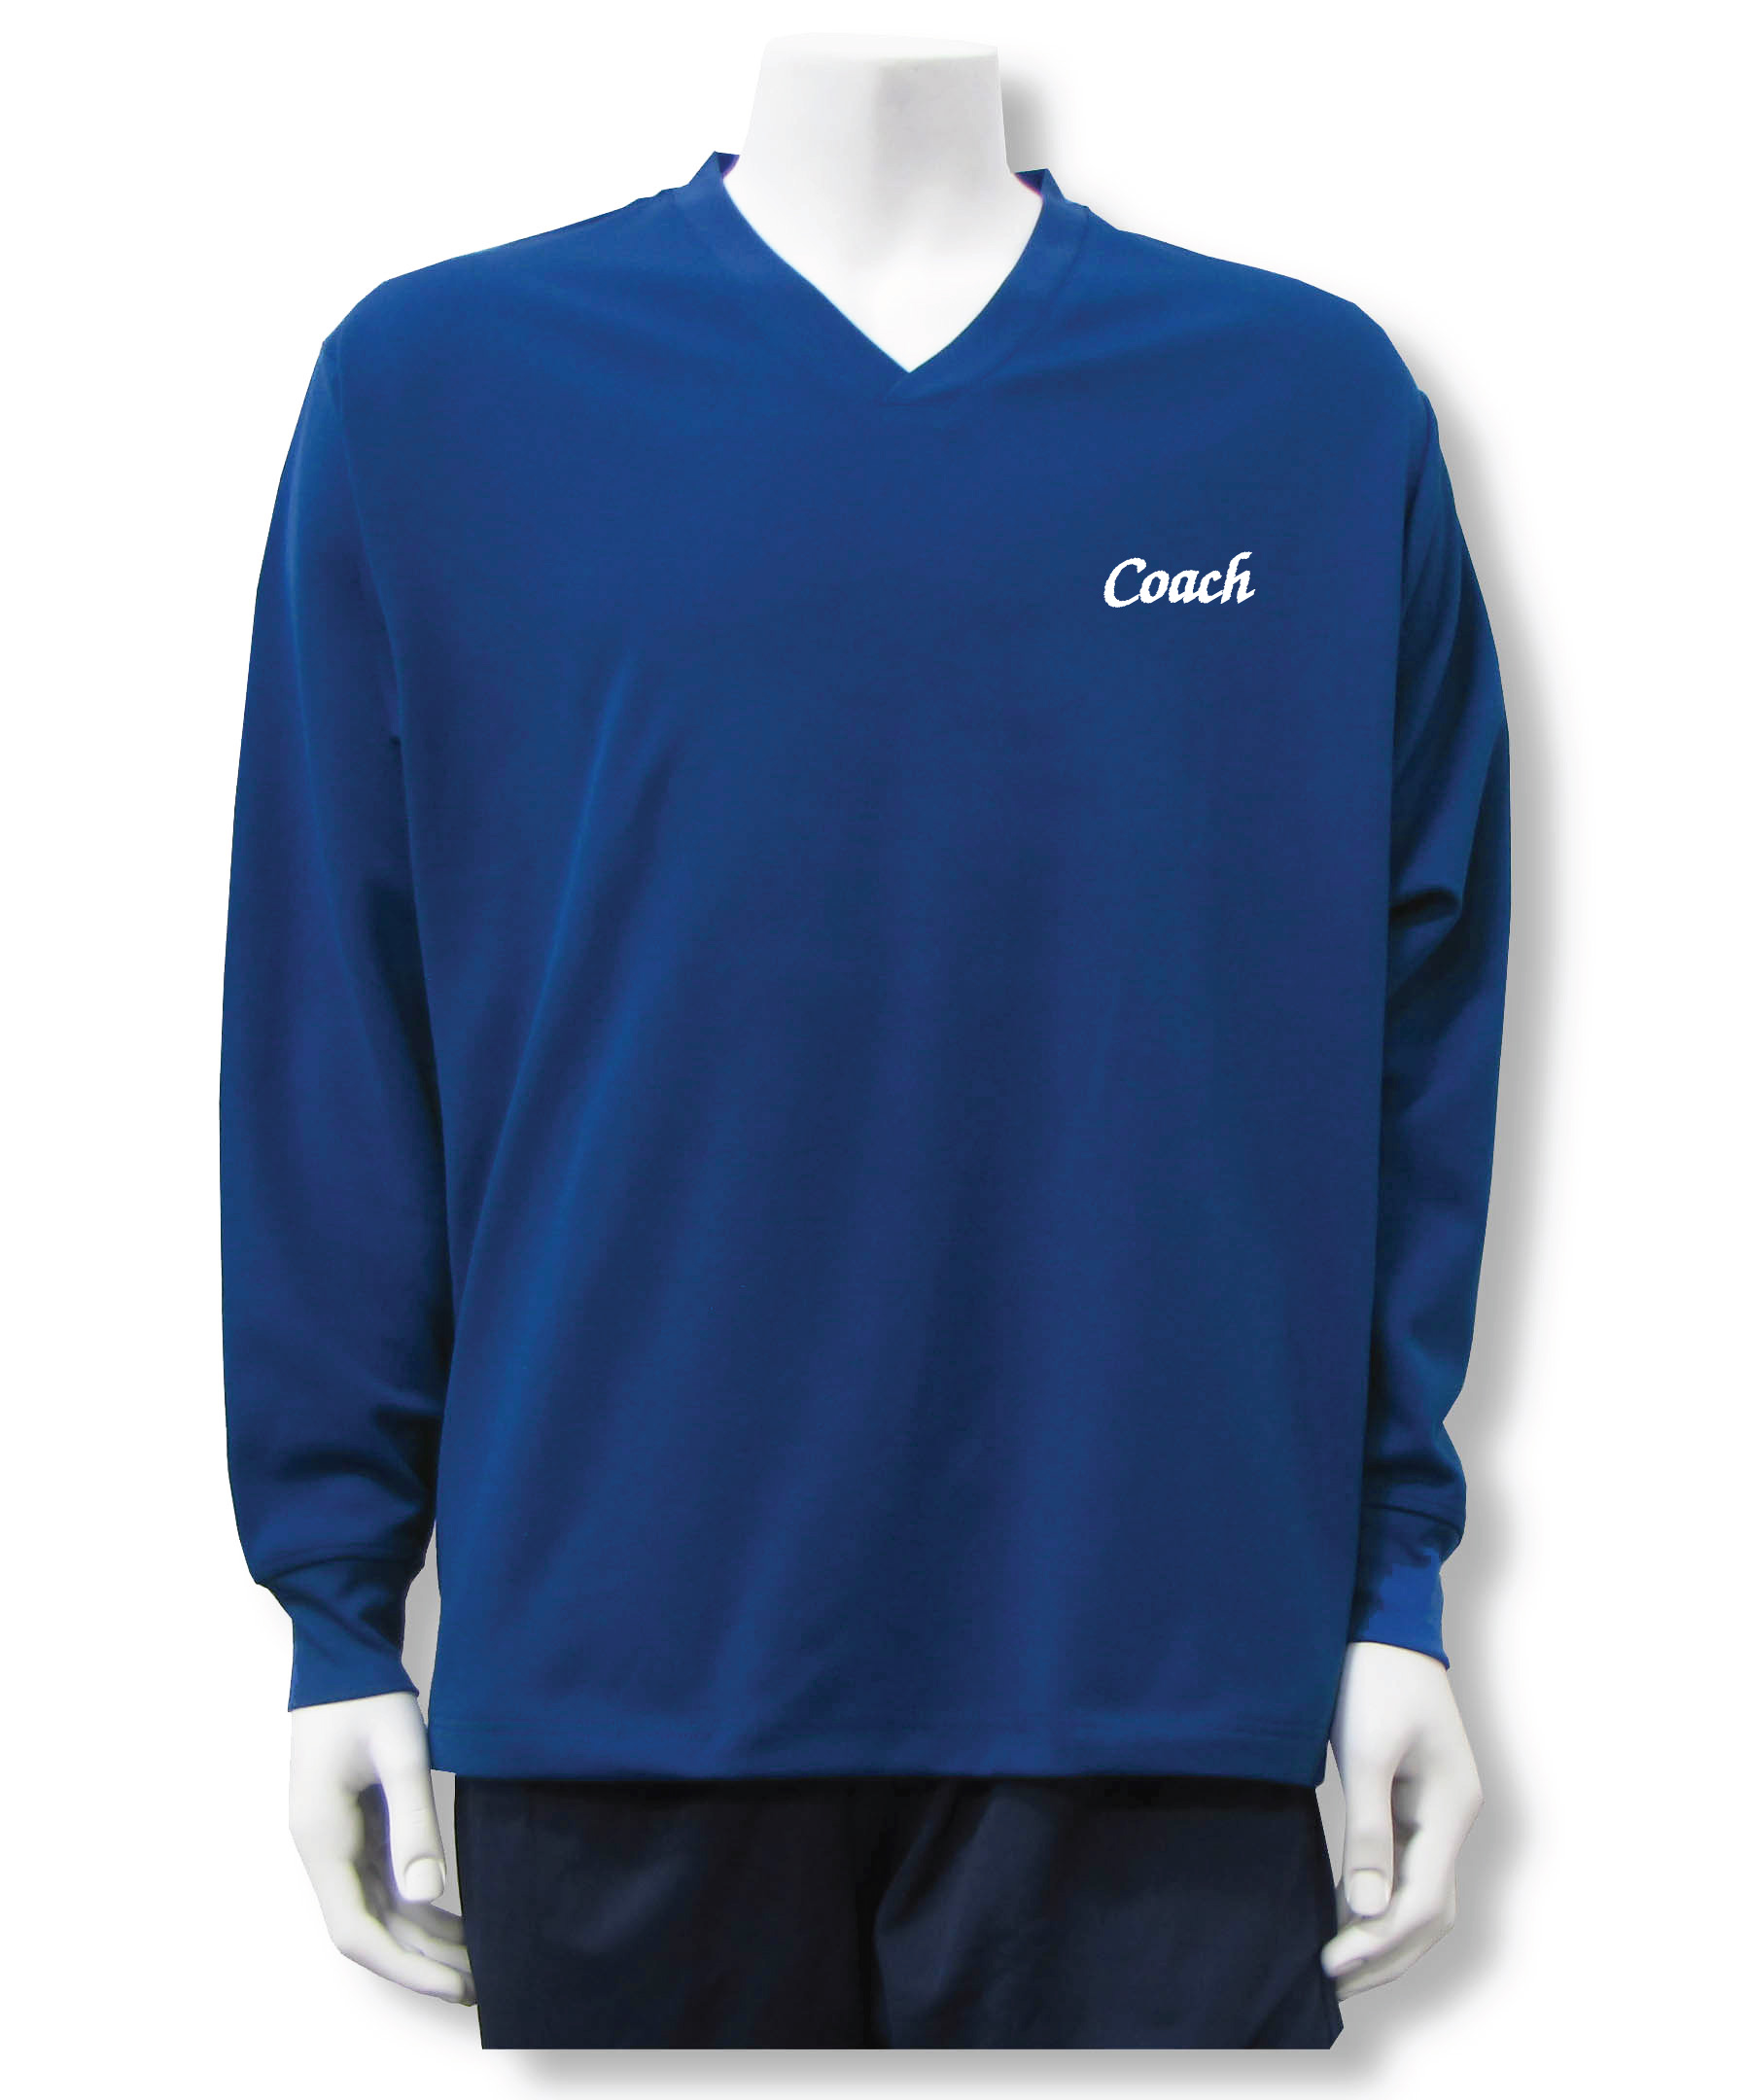 Coach pullover in navy by Code Four Athletics